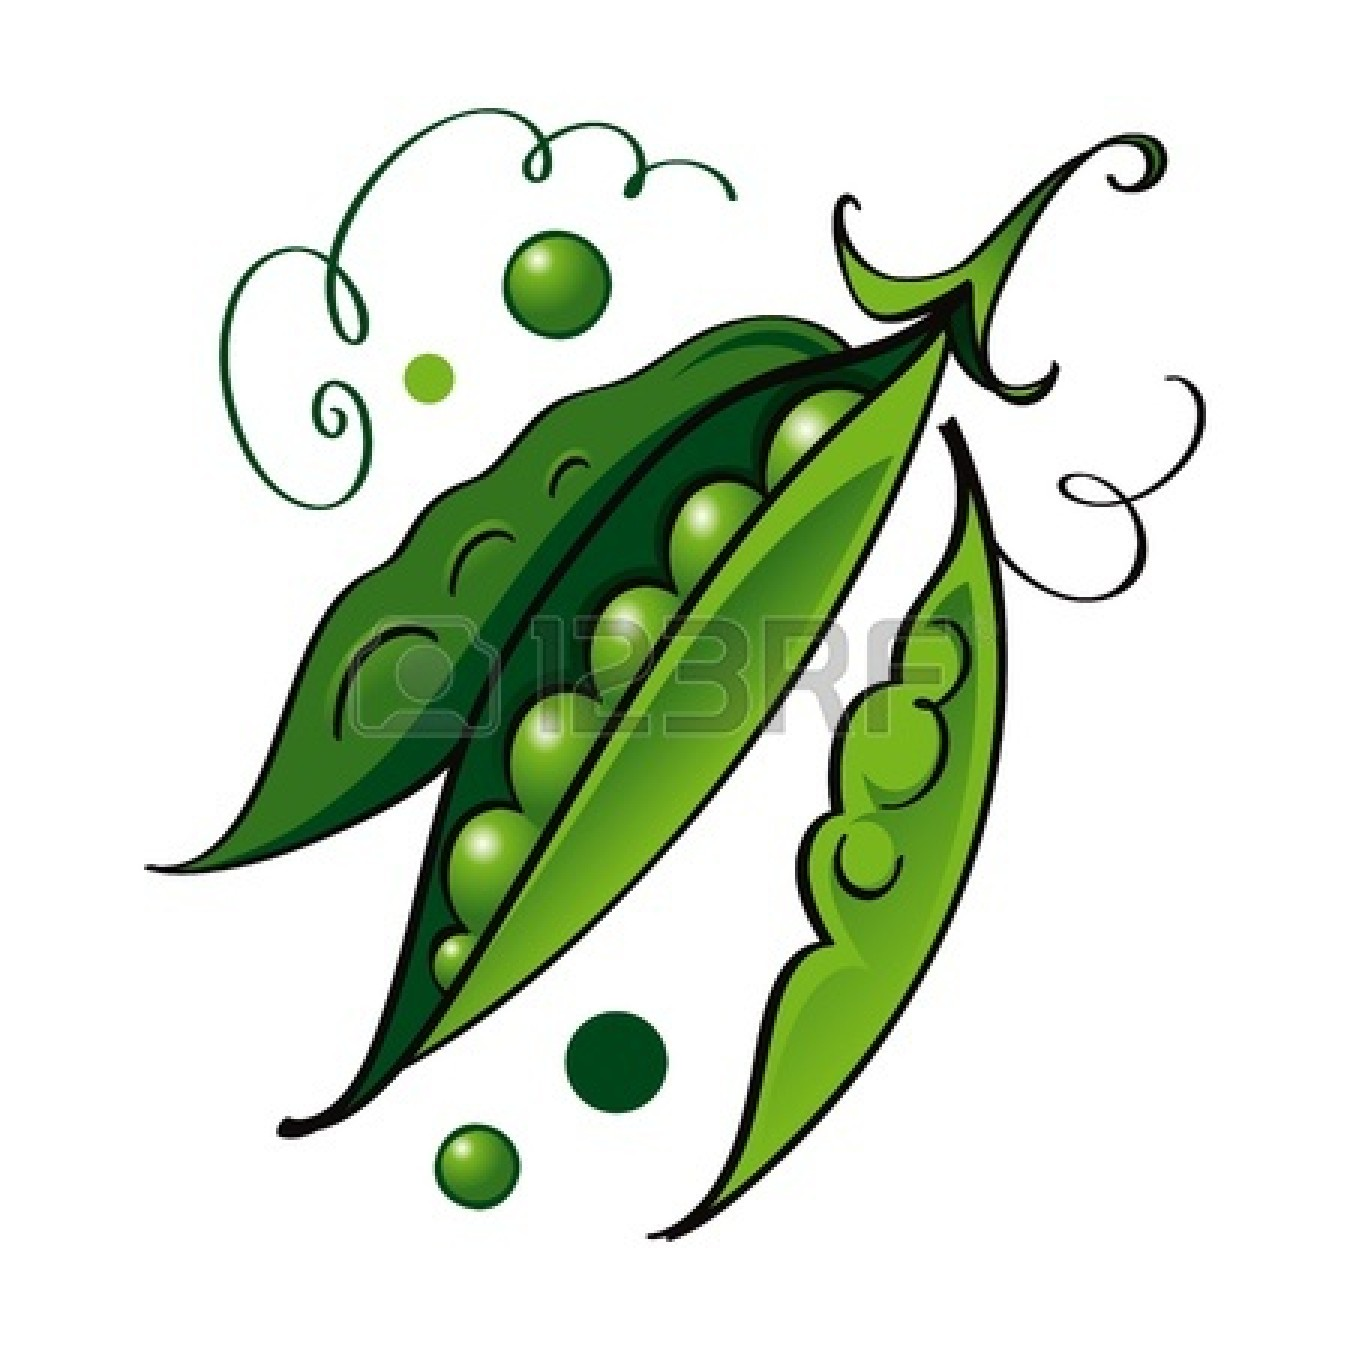 Peas clipart pod, Peas pod Transparent FREE for download on.